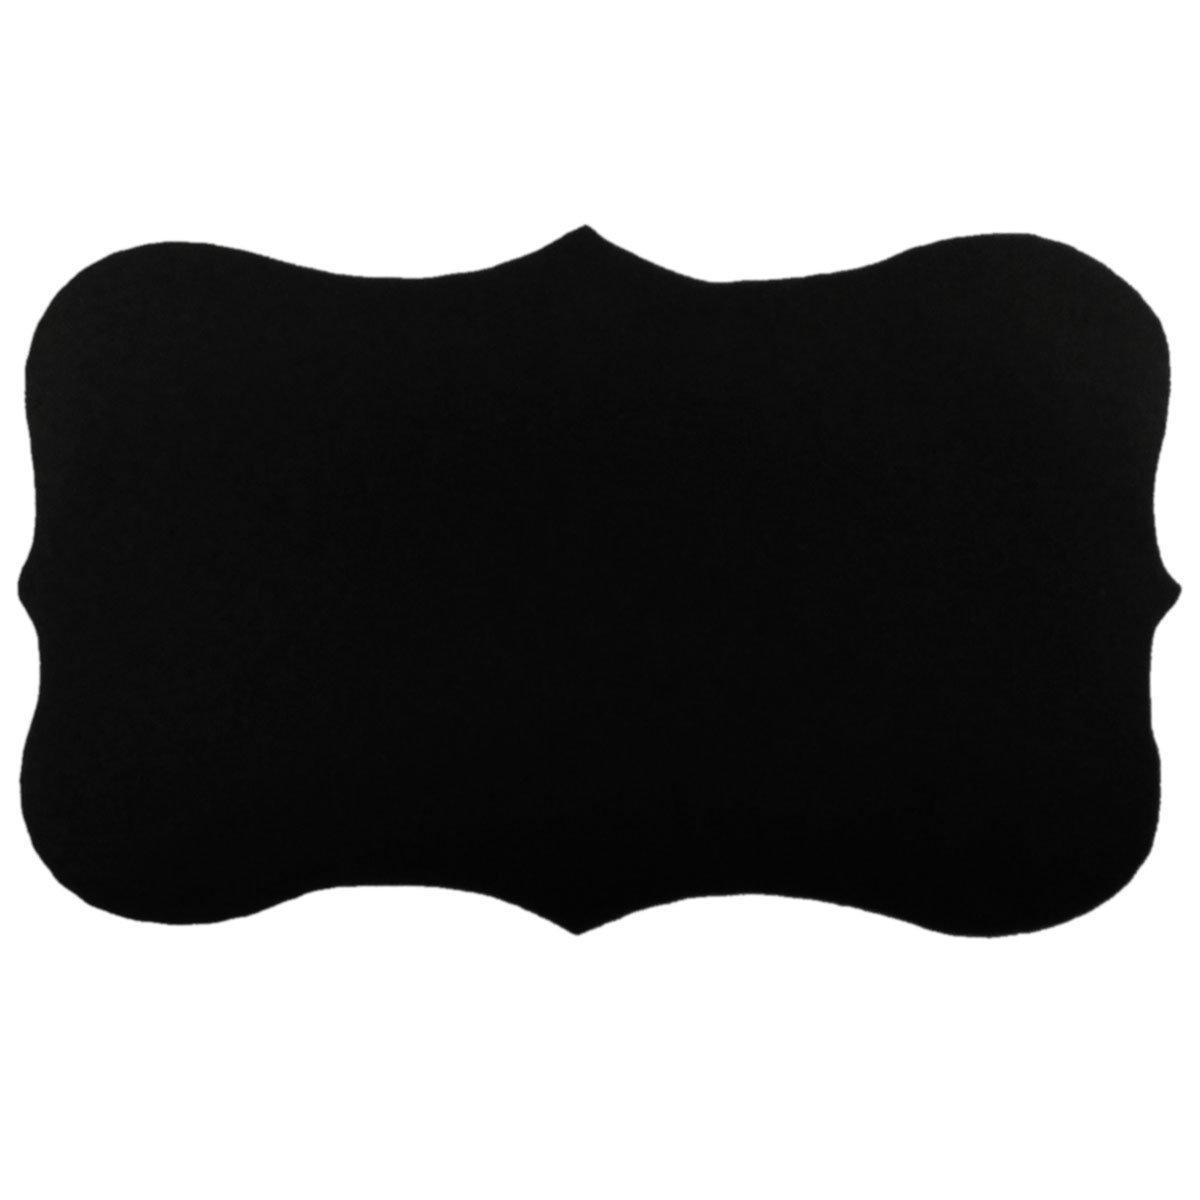 1200x1200 Chalkboard Cliparts Shape